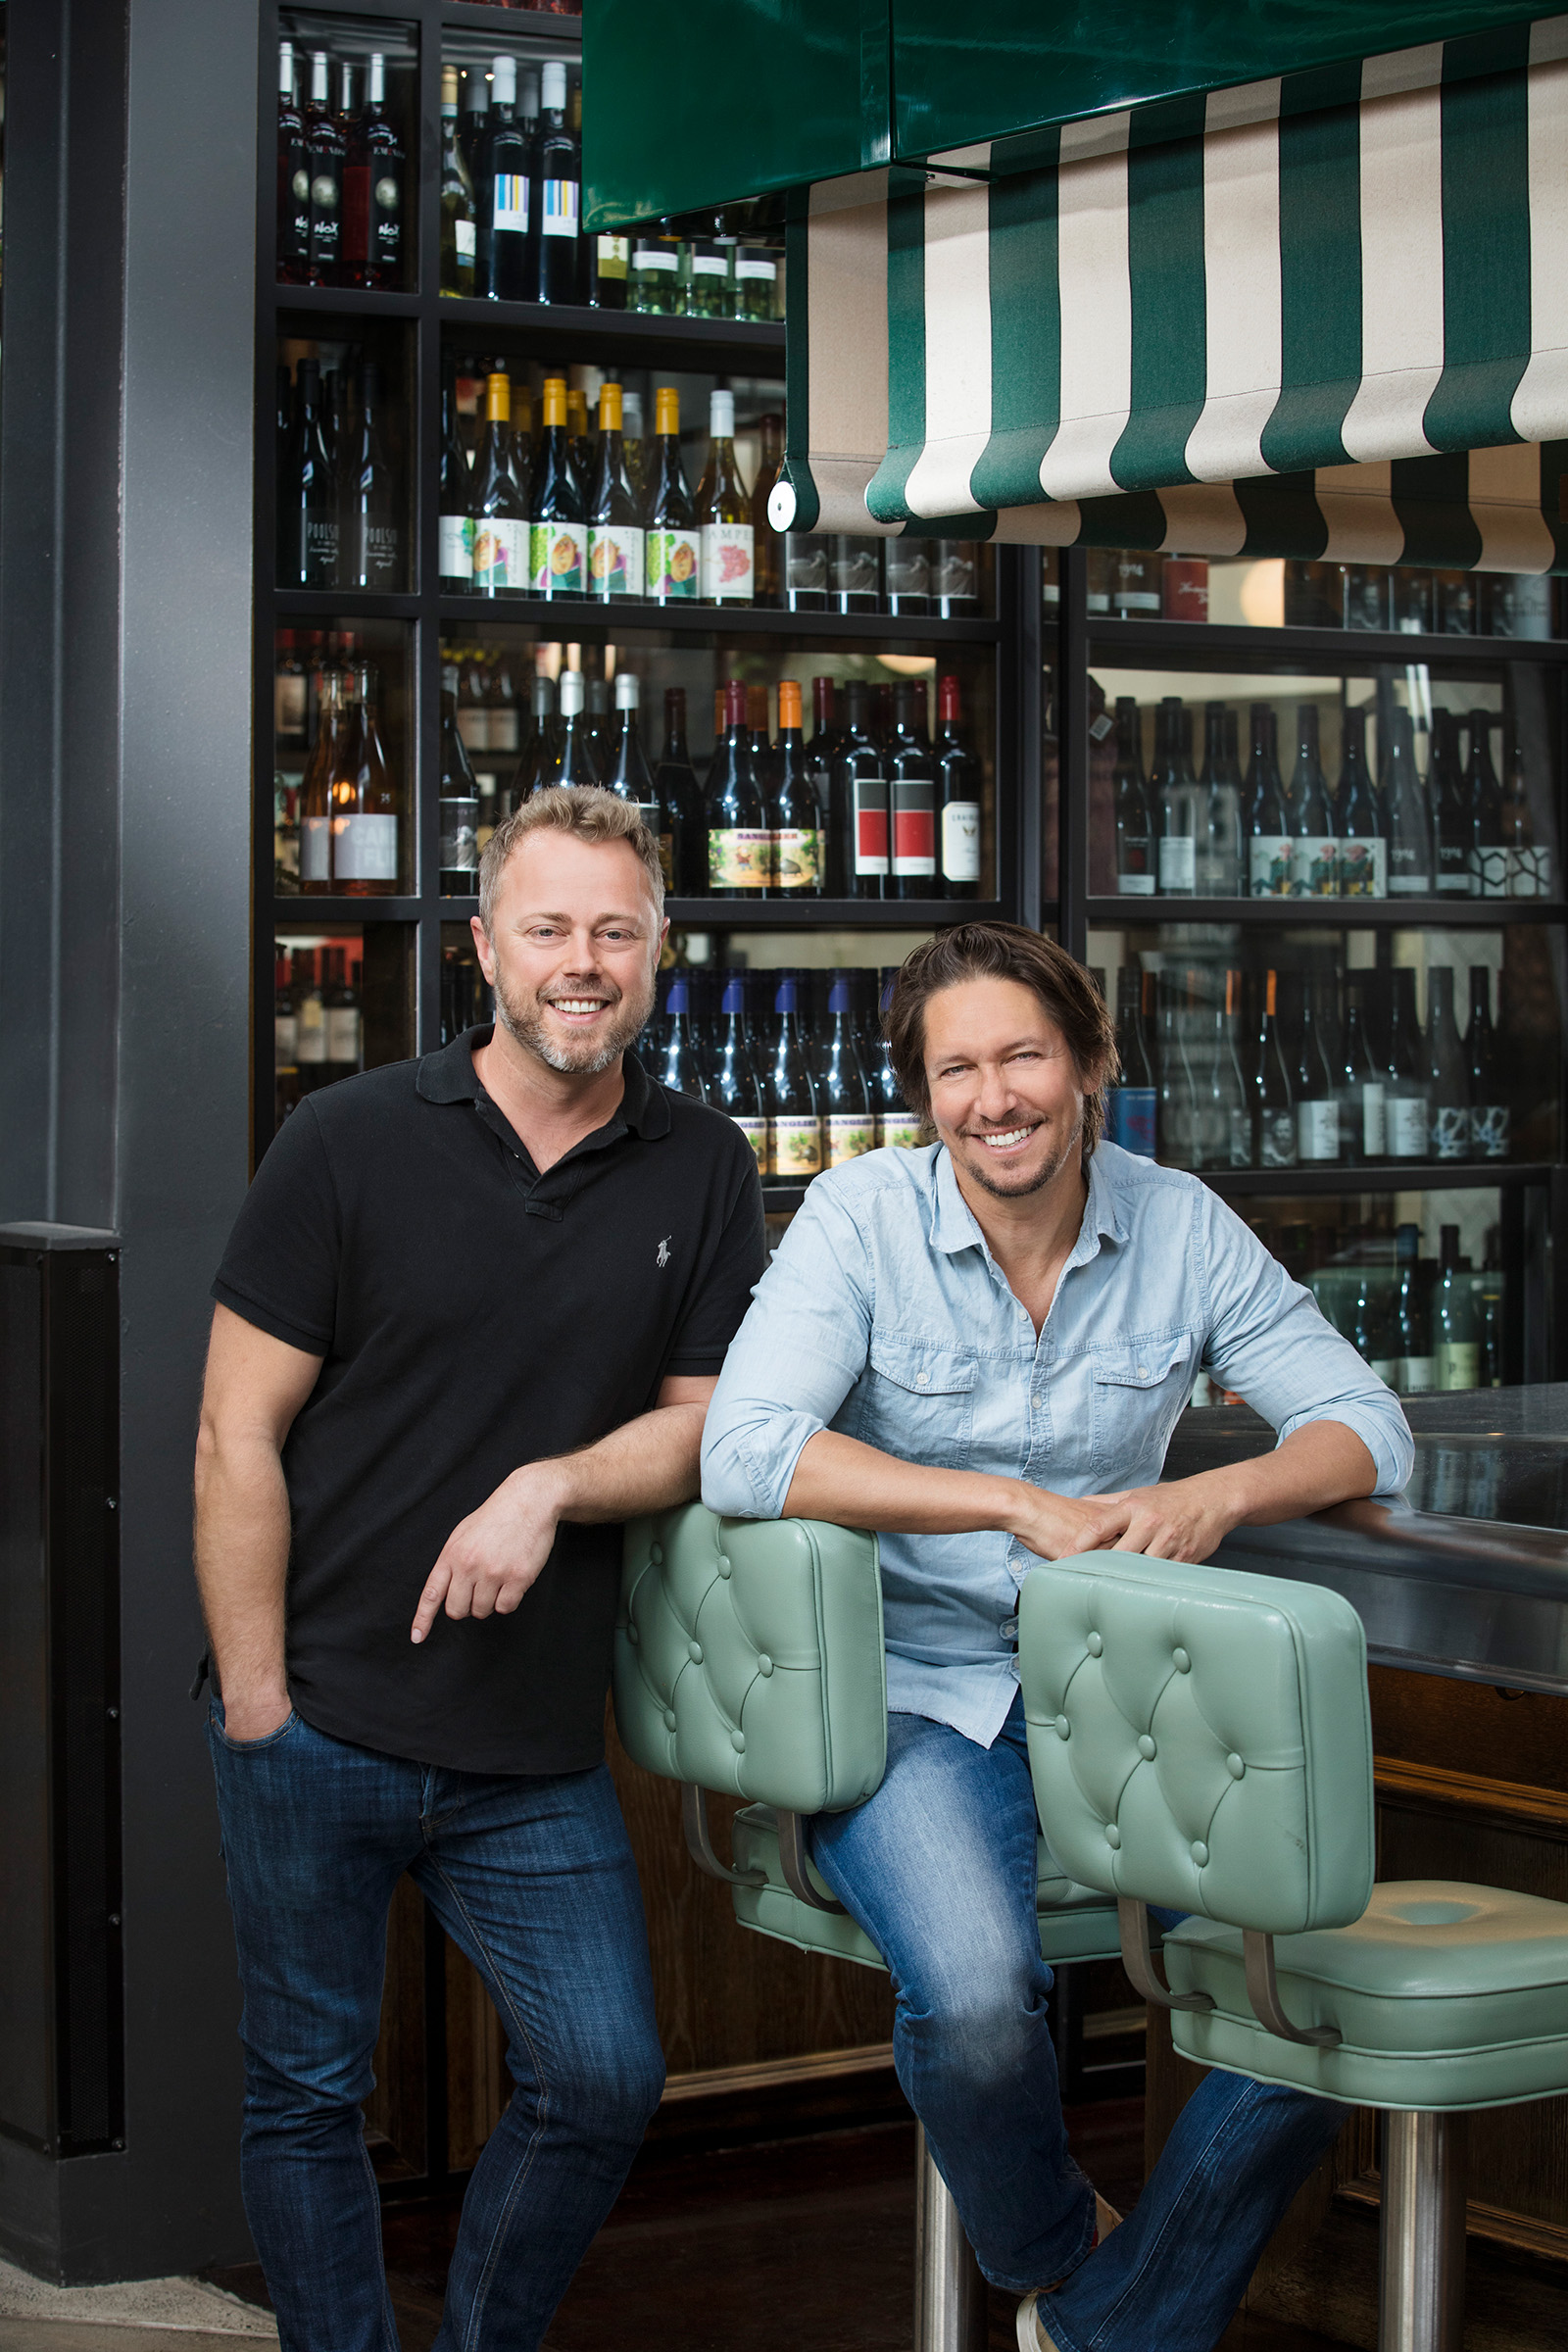 Editorial location photography for Inside Retail of Vinomofo founders Andre Eikmeier and Justin Dry smiling at the camera